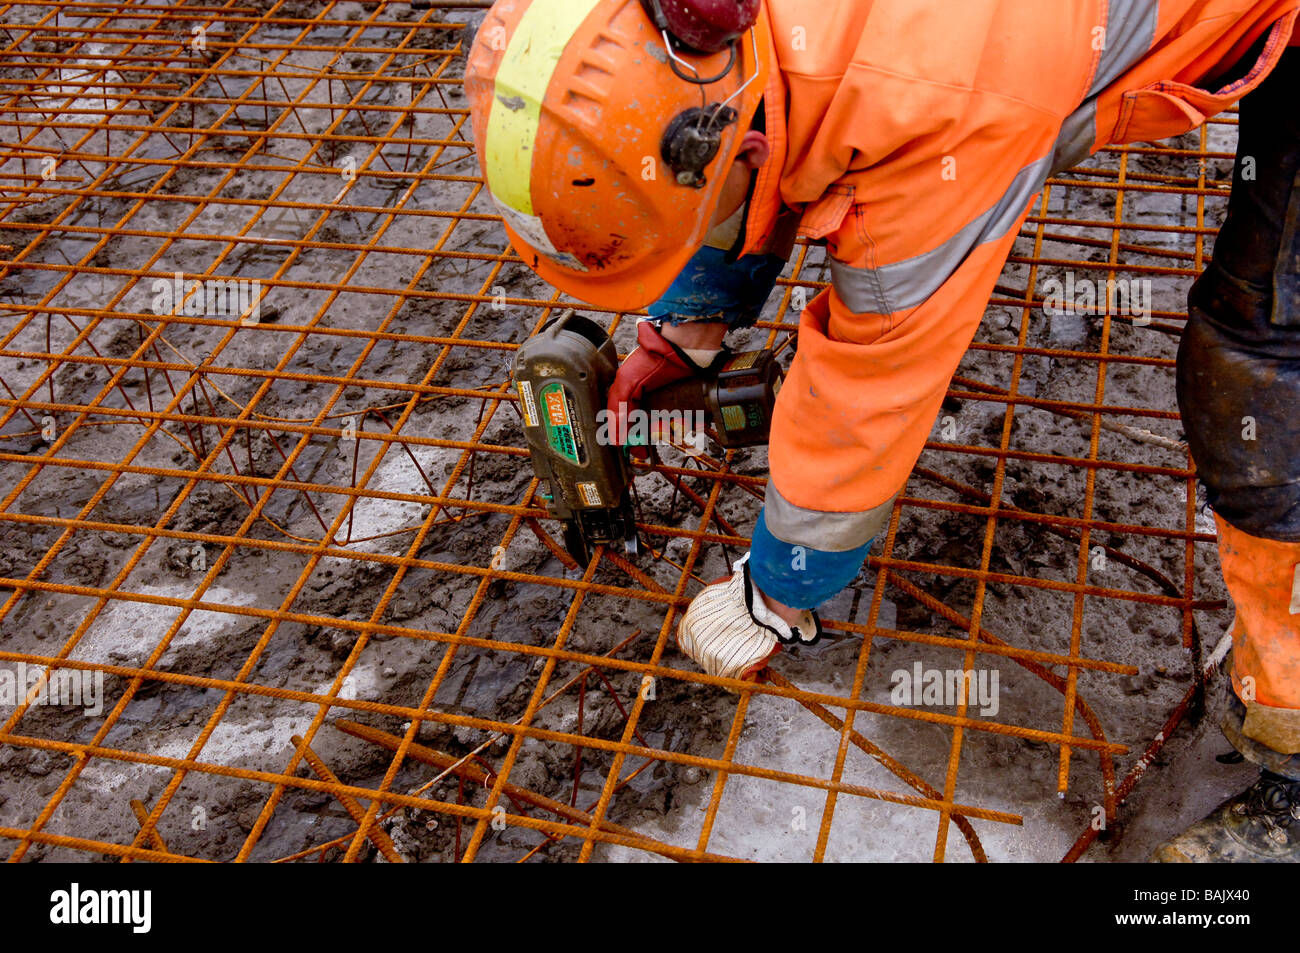 Construction workers putting reinforcement rods together before pouring concrete into the forms - Stock Image